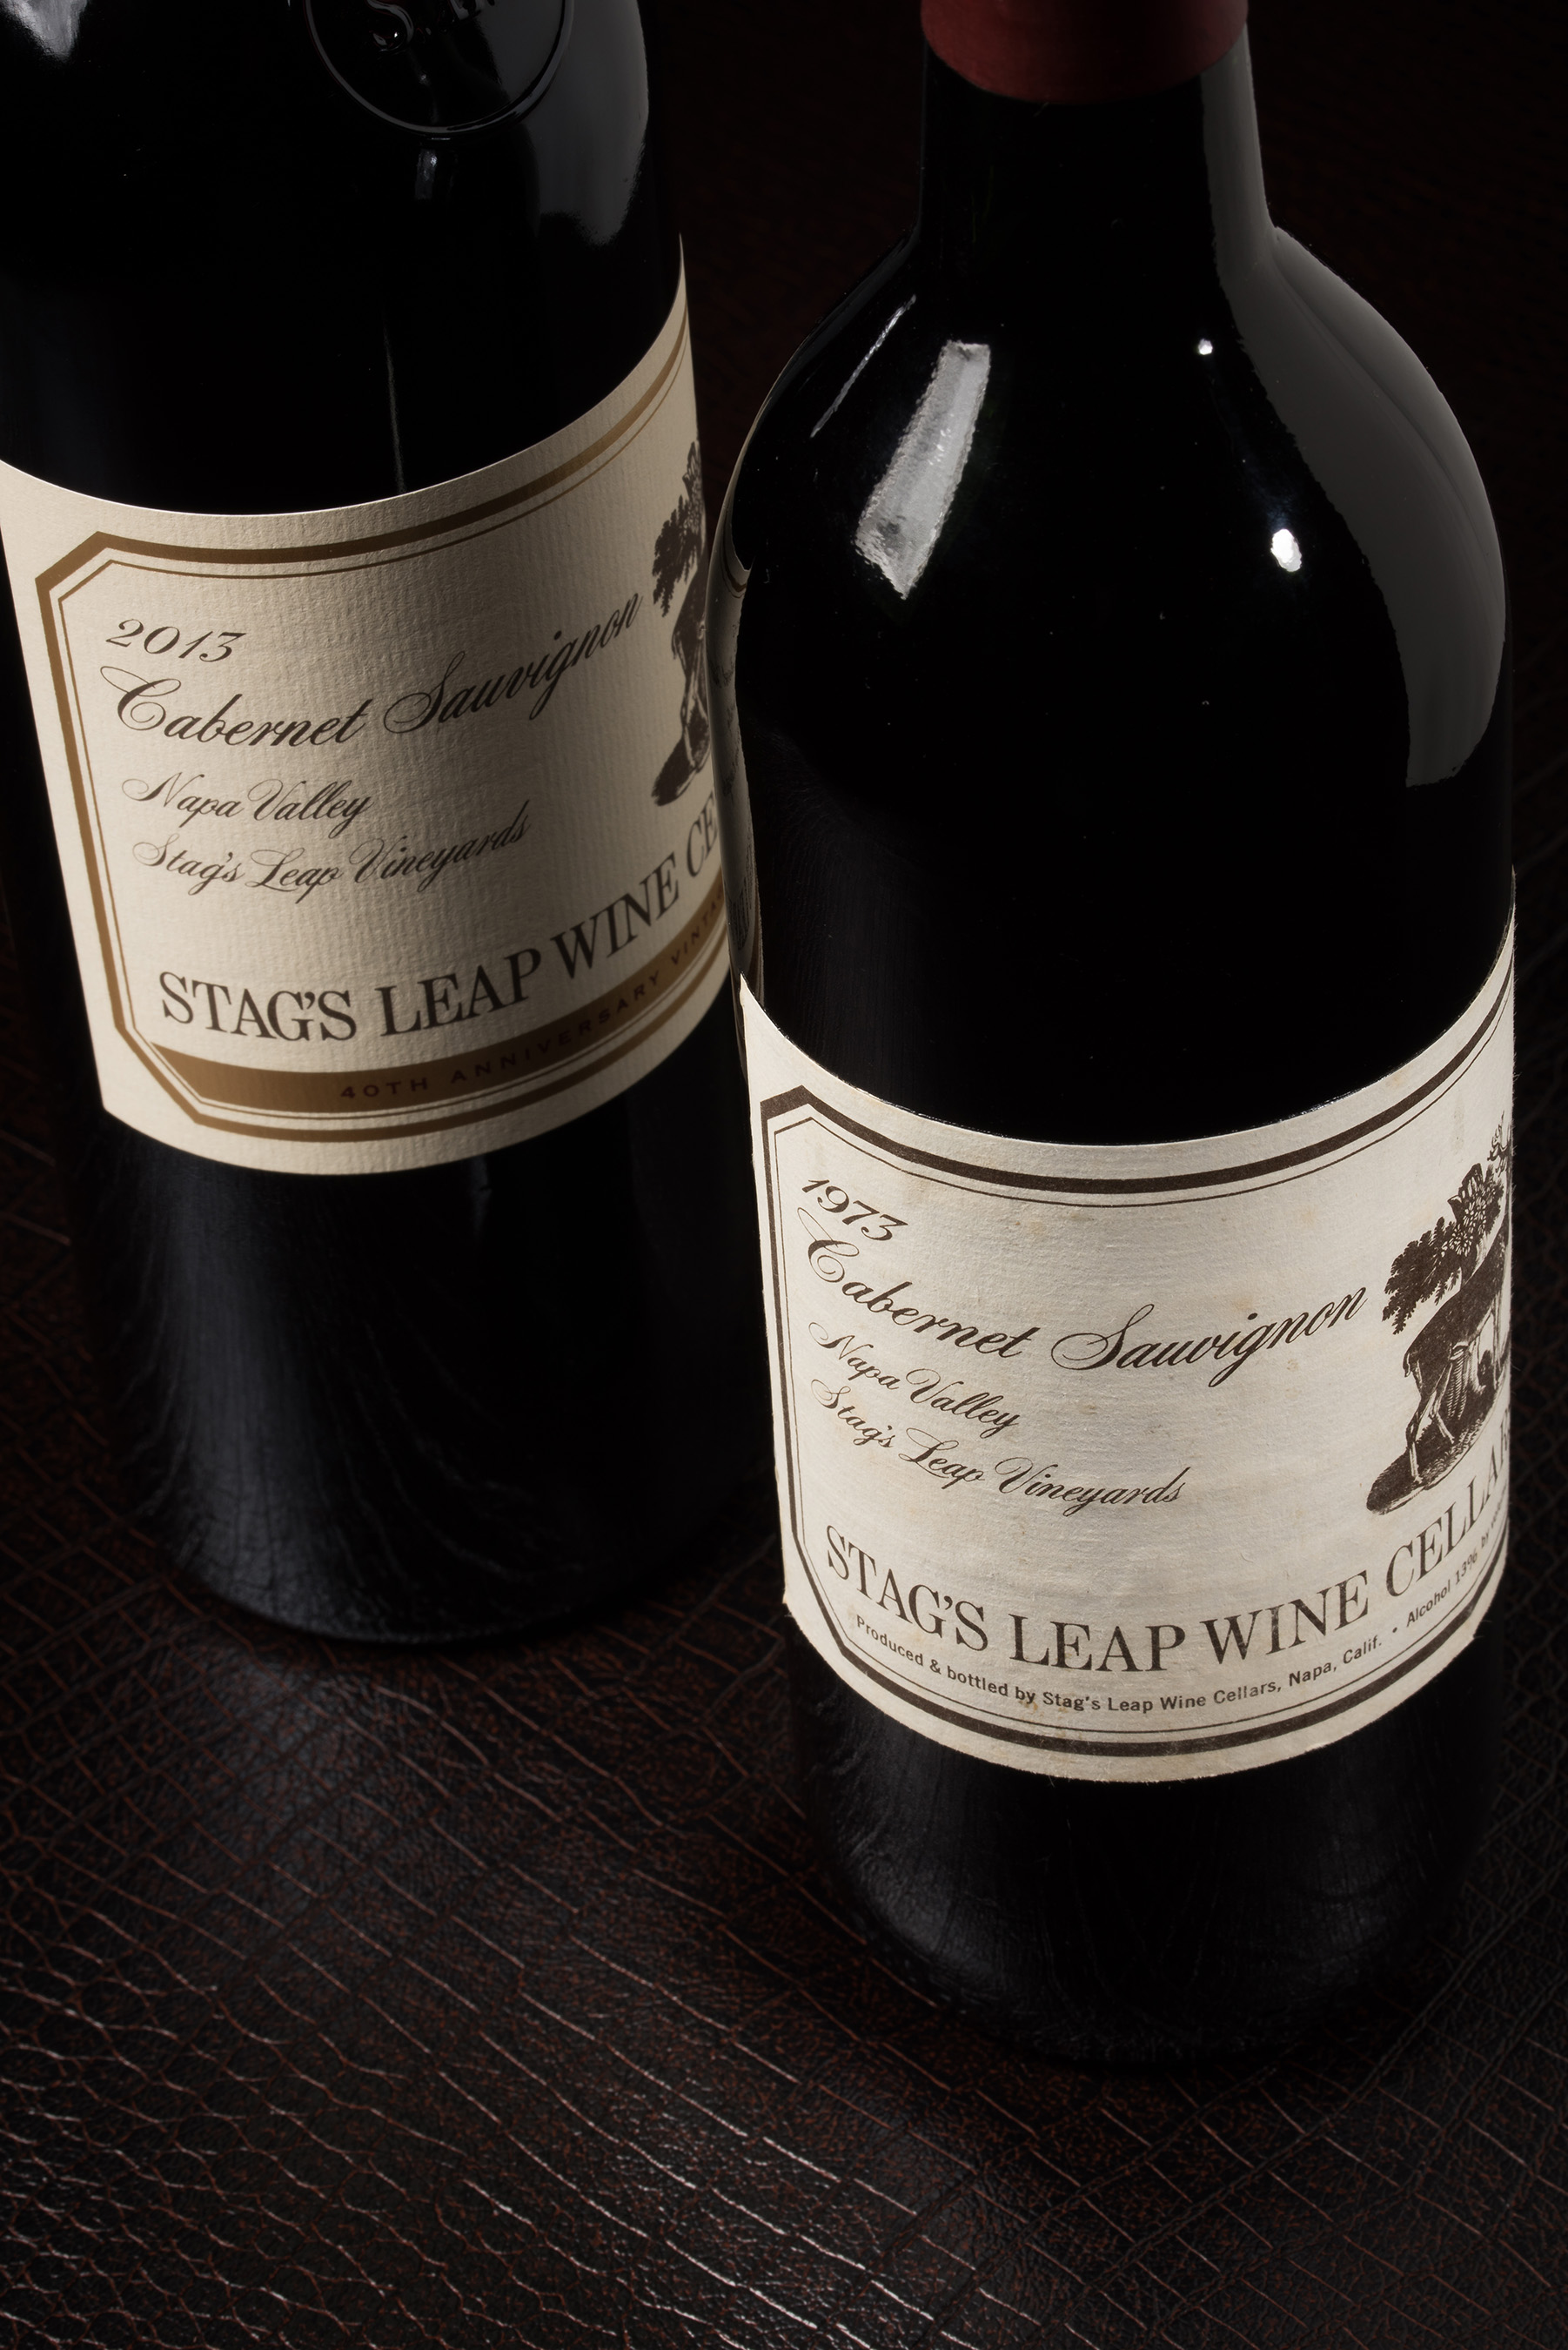 Stag's Leap Wine Cellars releases it 2013 S.L.V. Cabernet Sauvignon with a label replicating that of the famous 1973 S.L.V. Cabernet Sauvignon which took first place at the Paris Tasting of 1976.